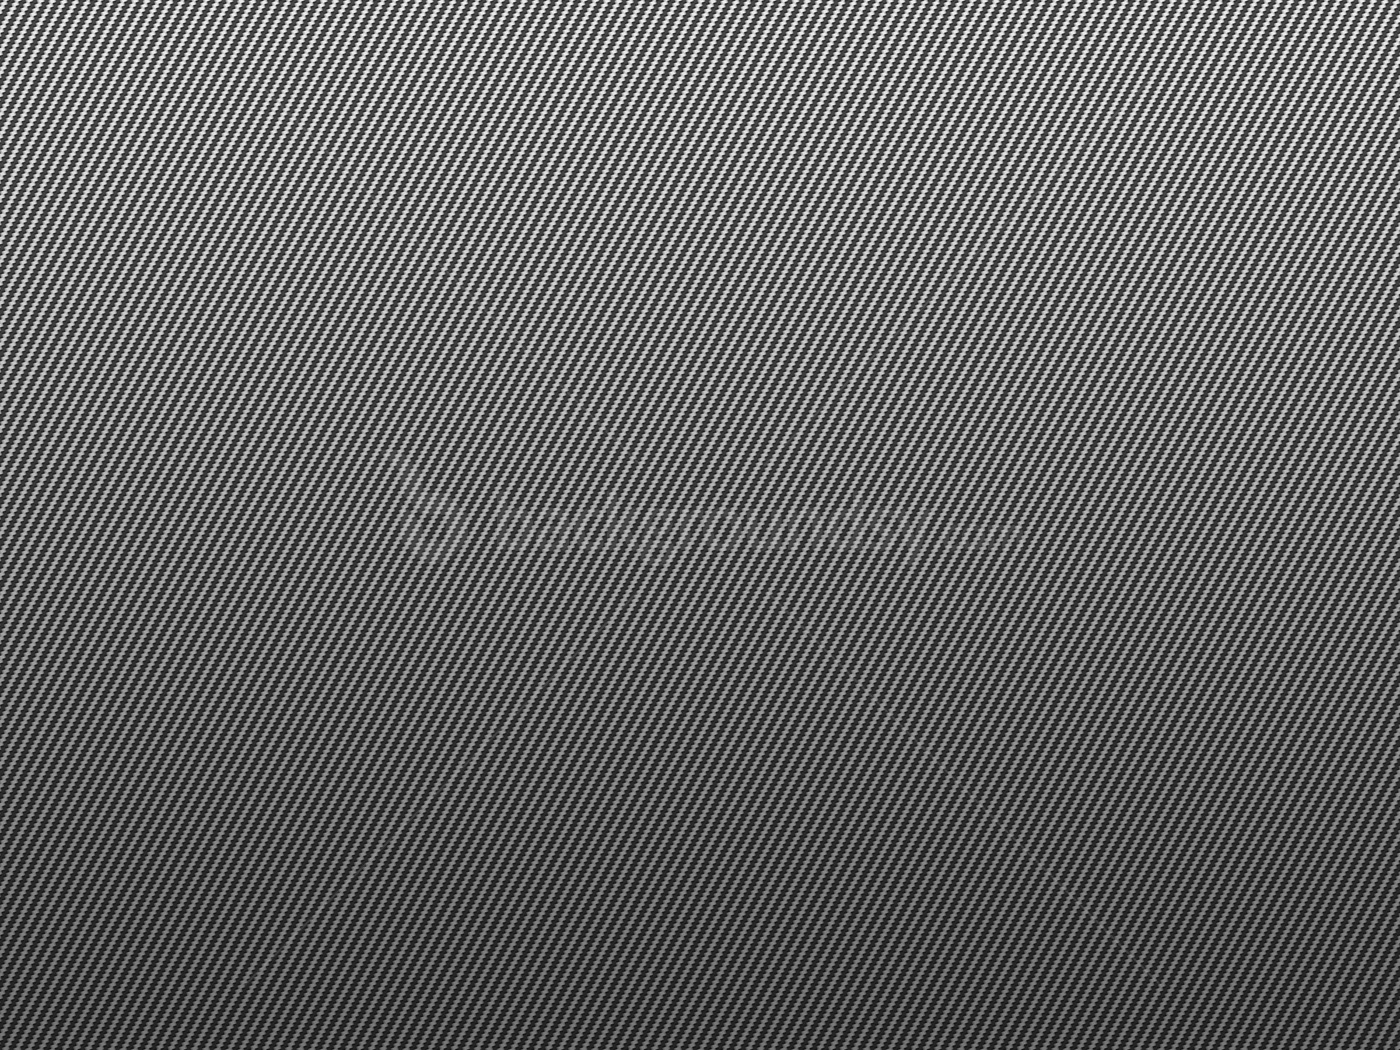 Background Wallpaper Hd Silver Carbon Fiber Backgroundsy Com